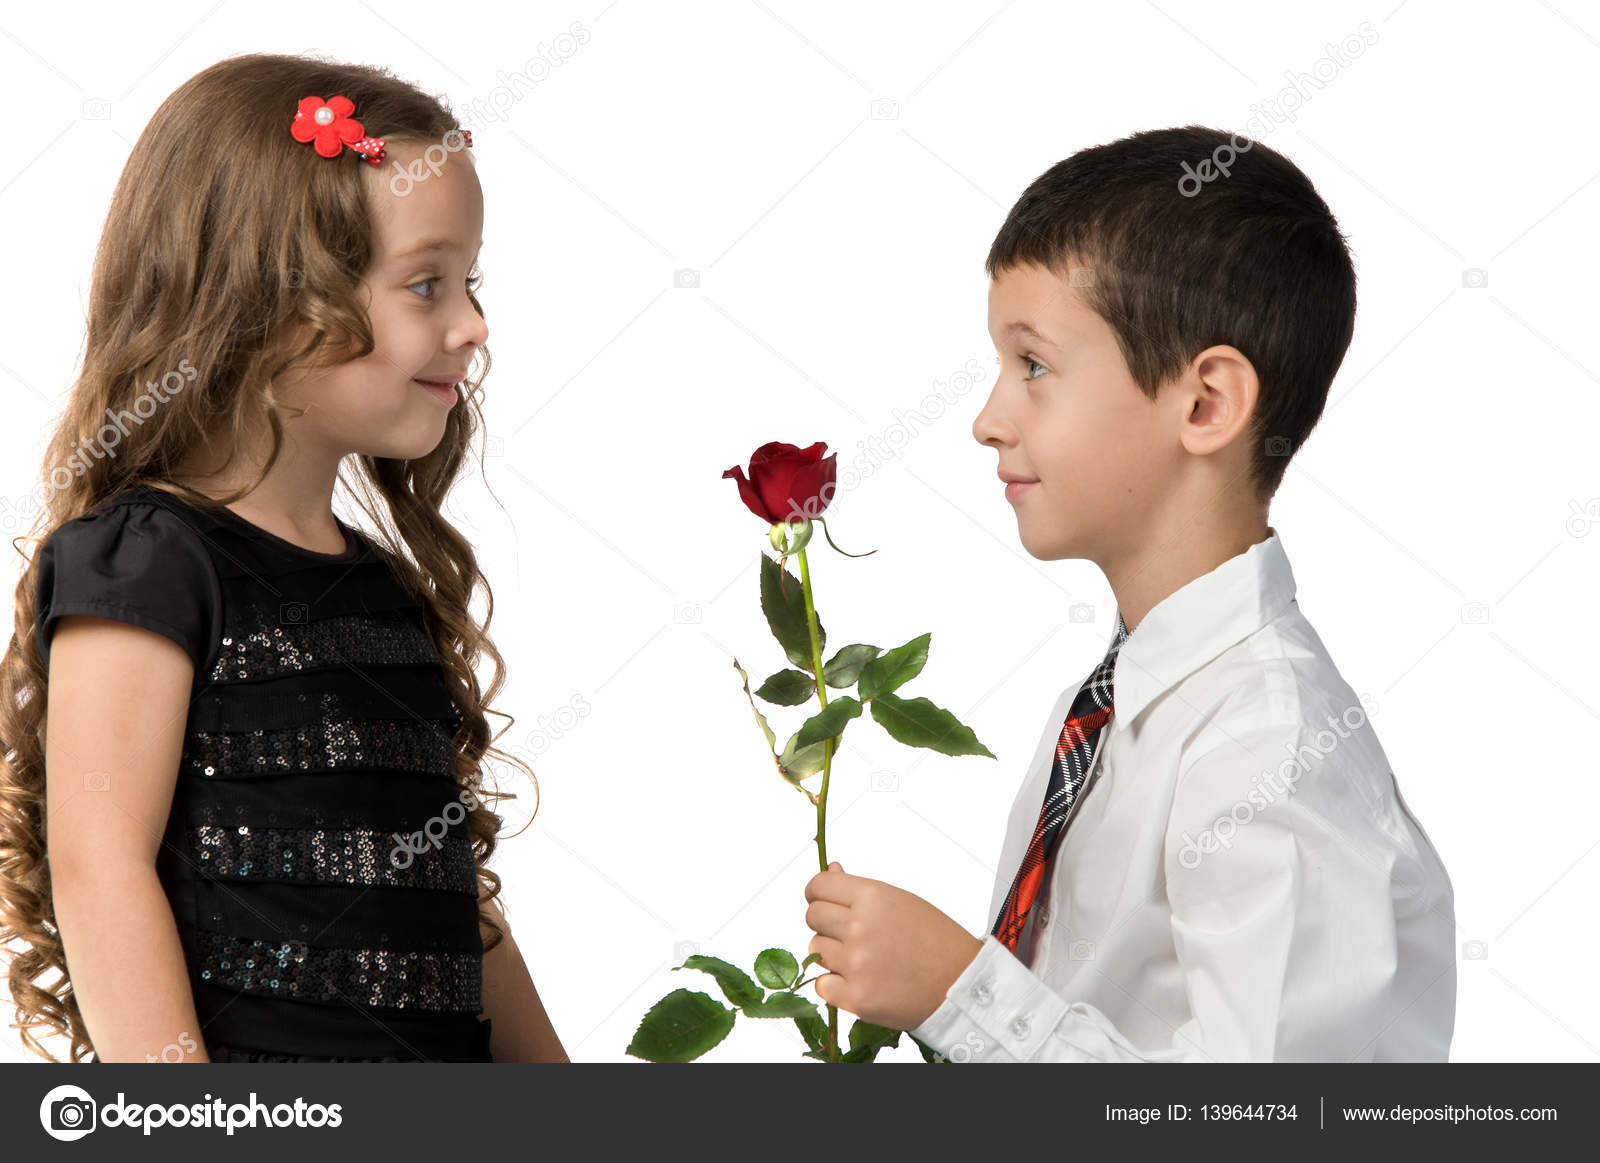 idealistic dating